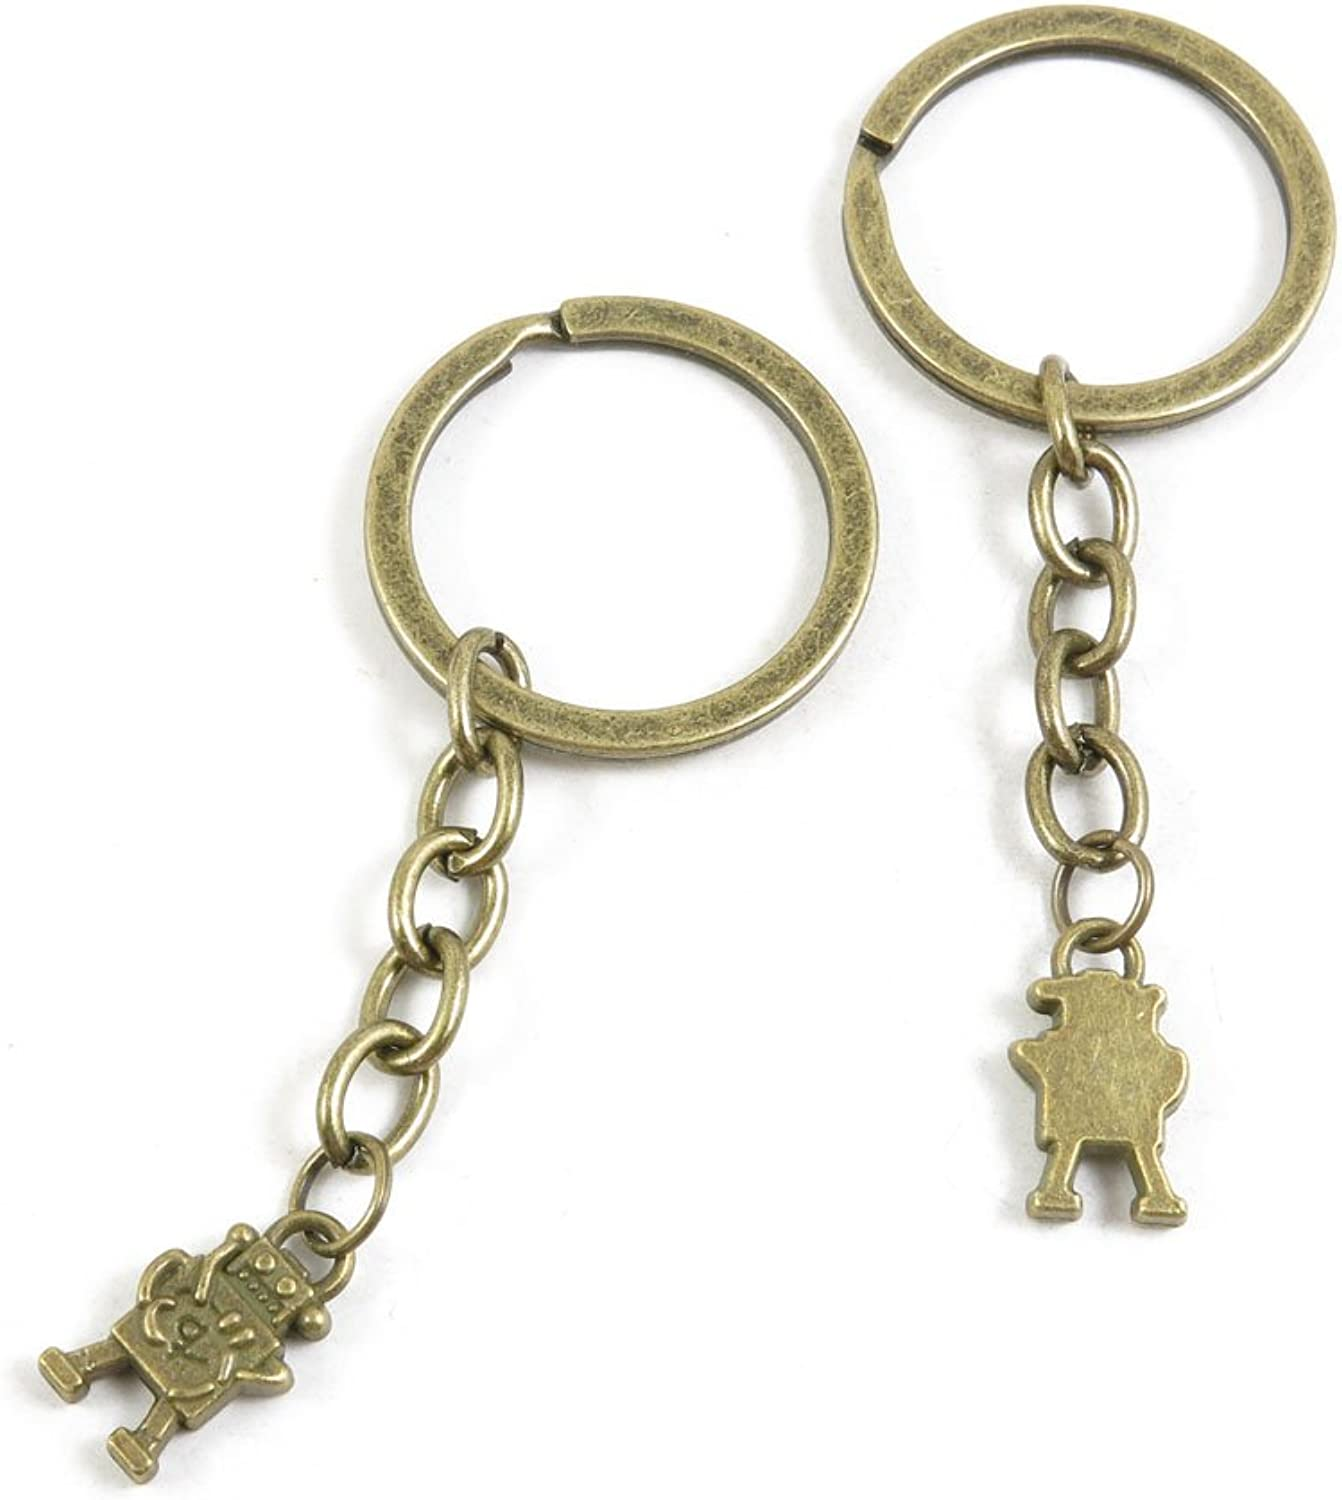 200 Pieces Fashion Jewelry Keyring Keychain Door Car Key Tag Ring Chain Supplier Supply Wholesale Bulk Lots N4HV7 Robot